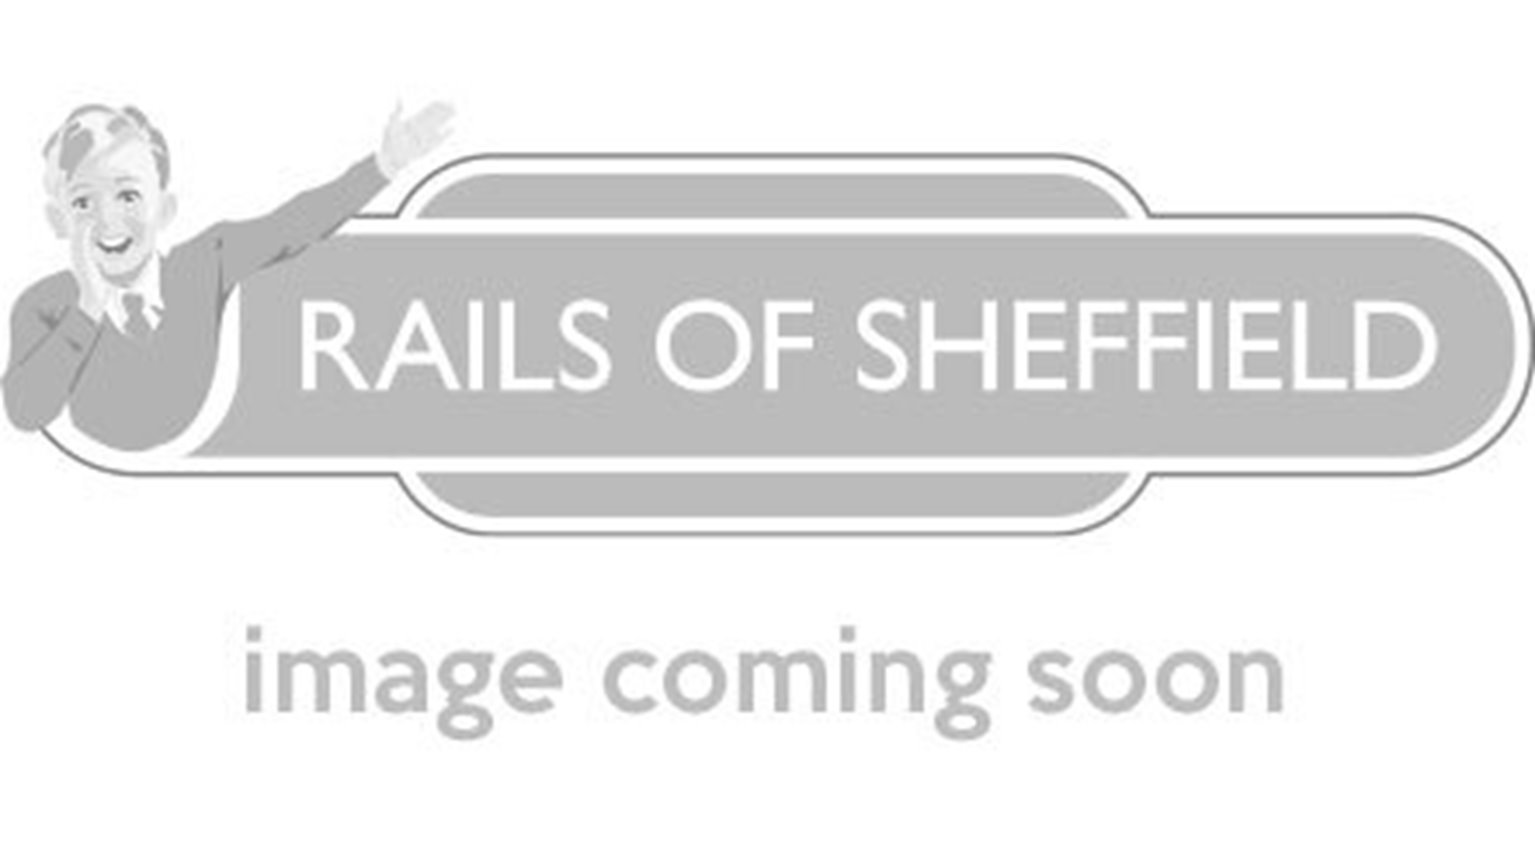 Feather Edge Board Fencing, incl. gates